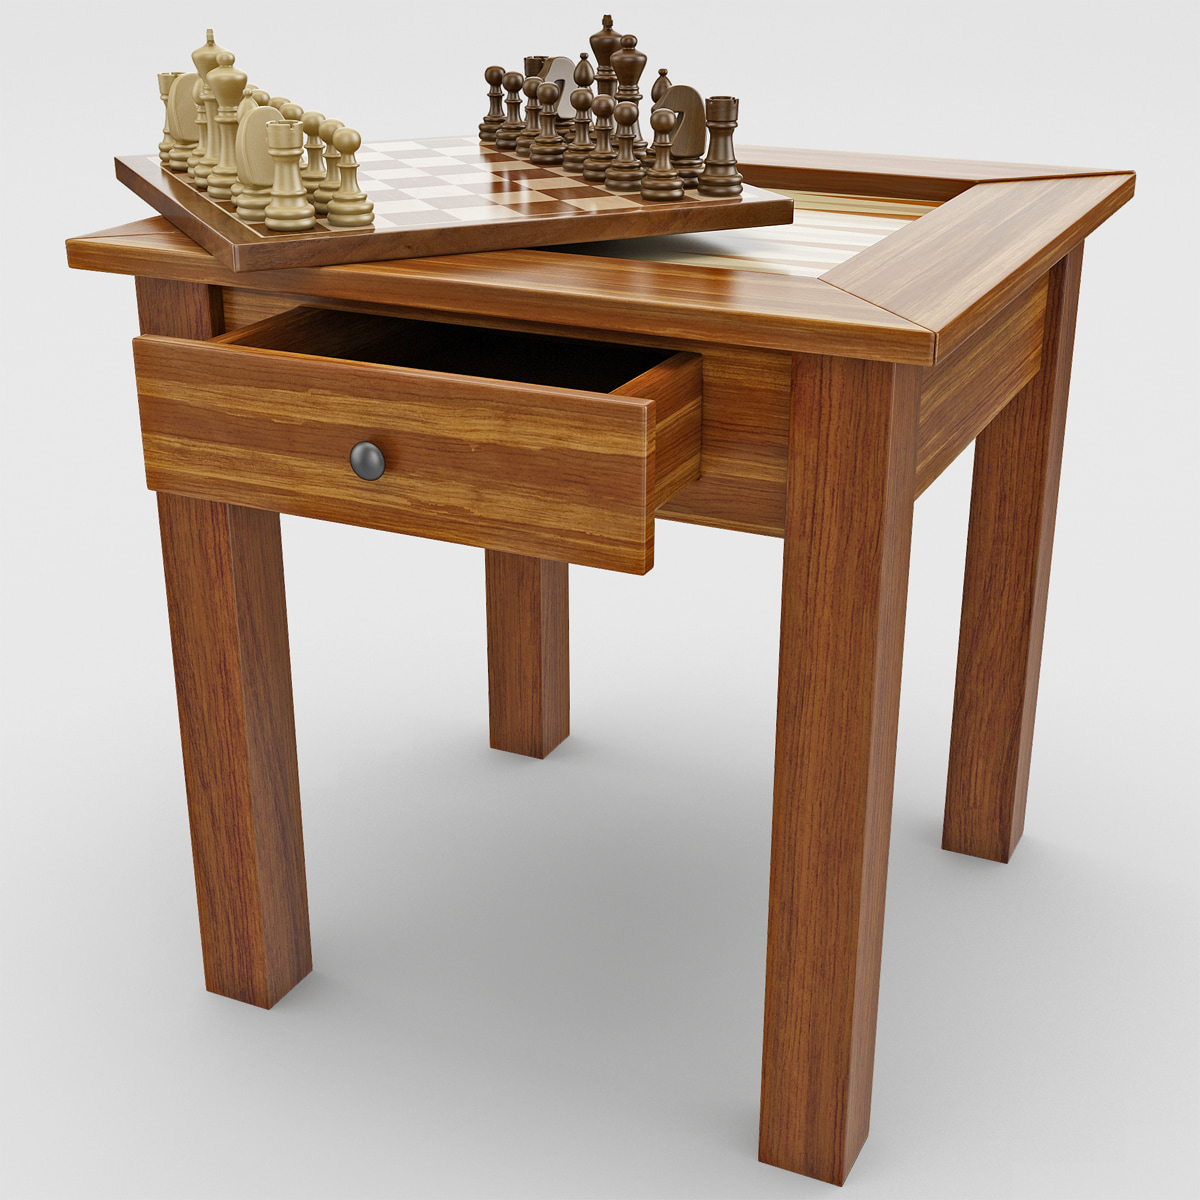 Max A Table Chess Backgammon Table Max